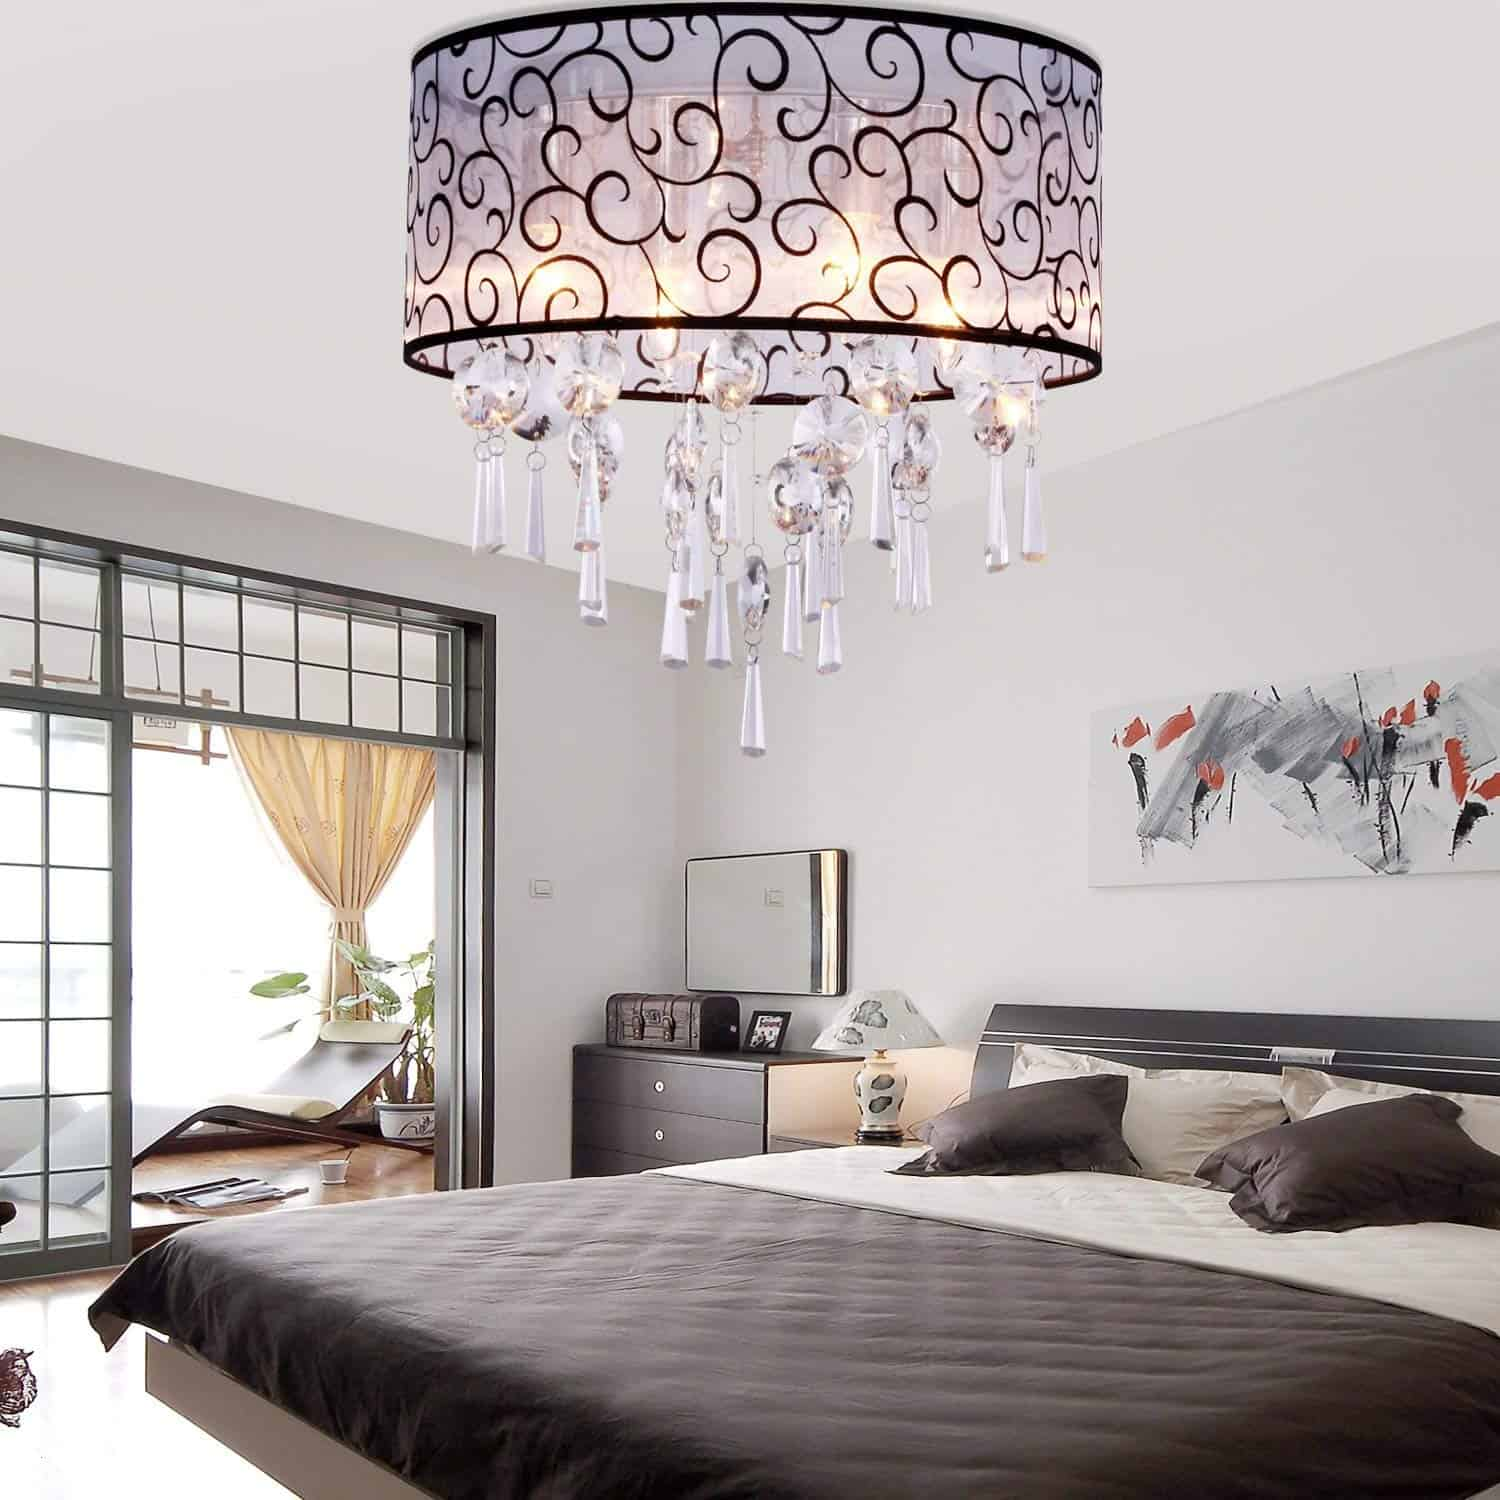 pattern light fixture Mesmerizing Master Bedroom Lighting Ideas